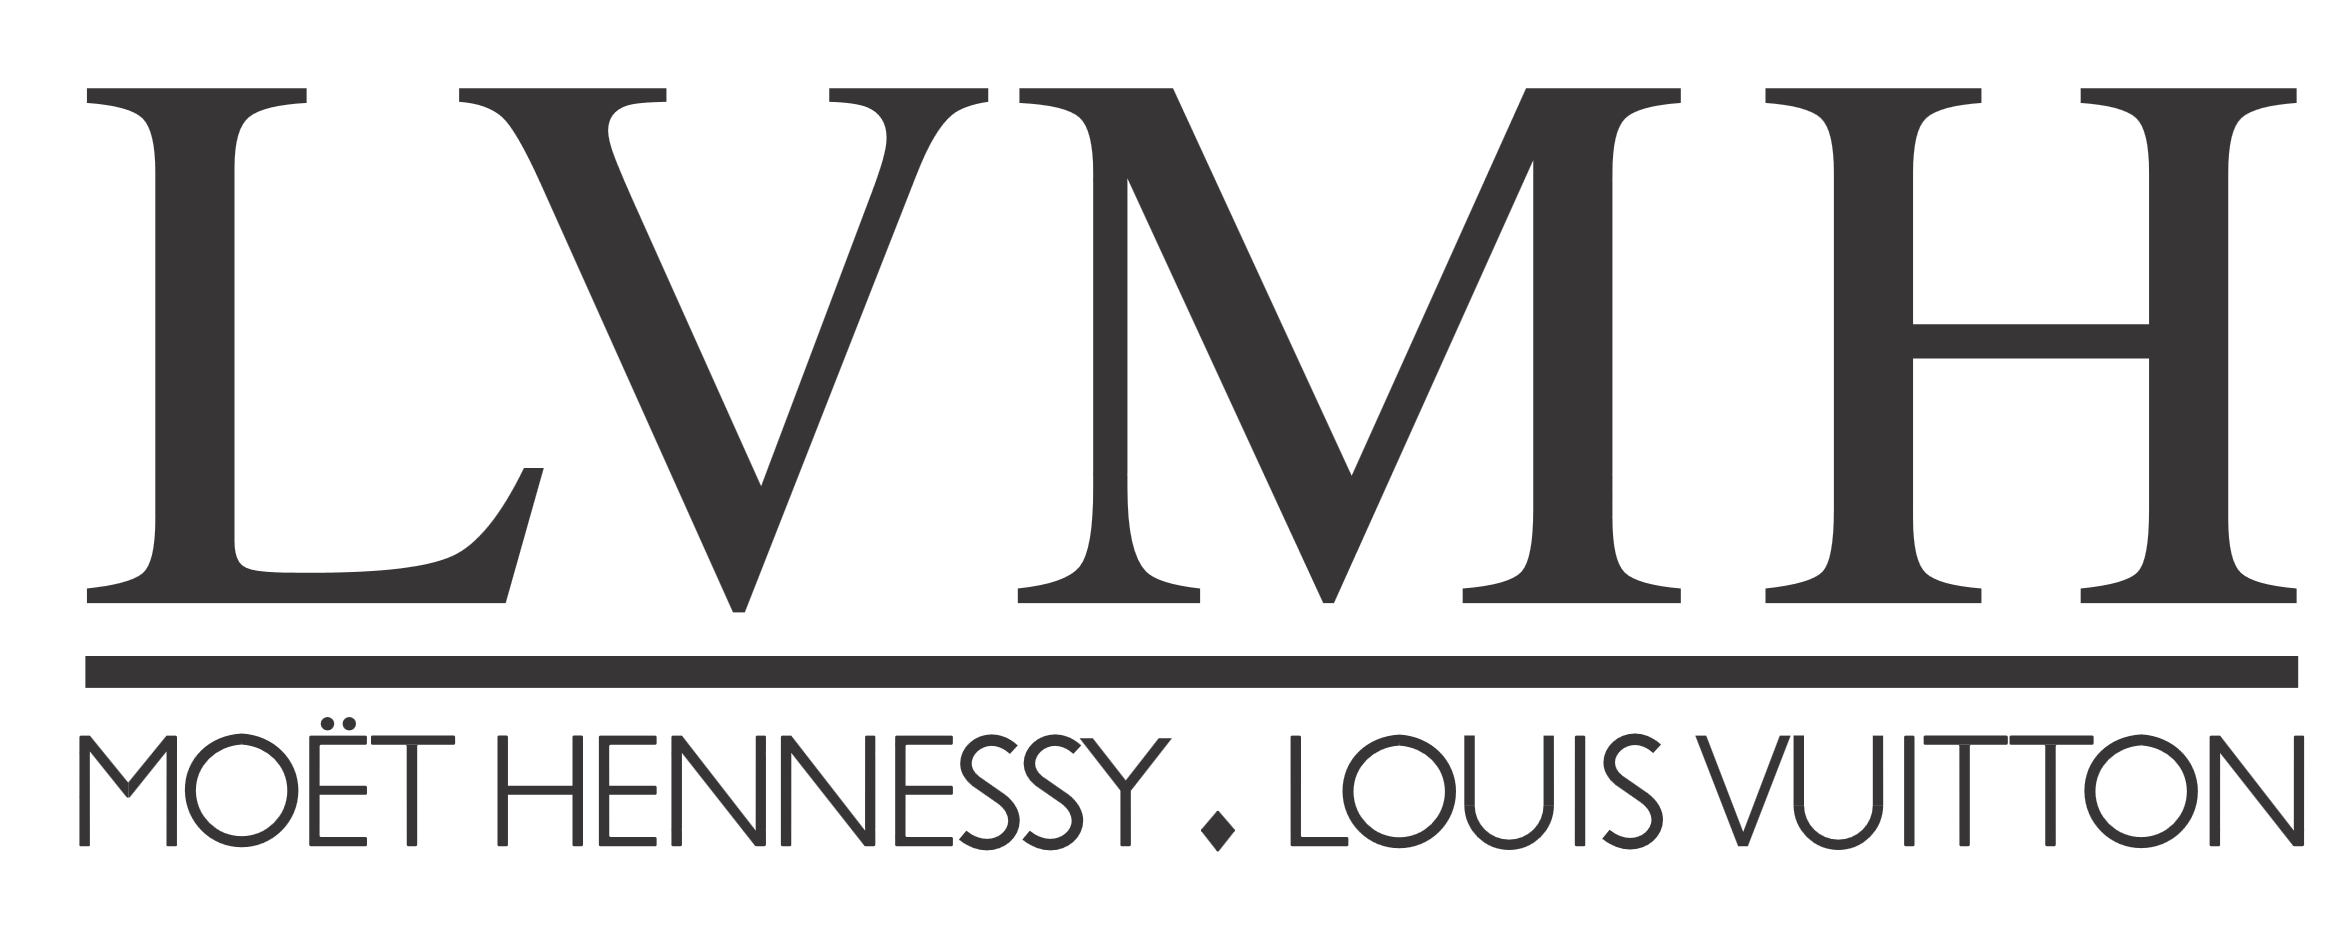 Moet hennessy logo png. Lvmh logotype mo t